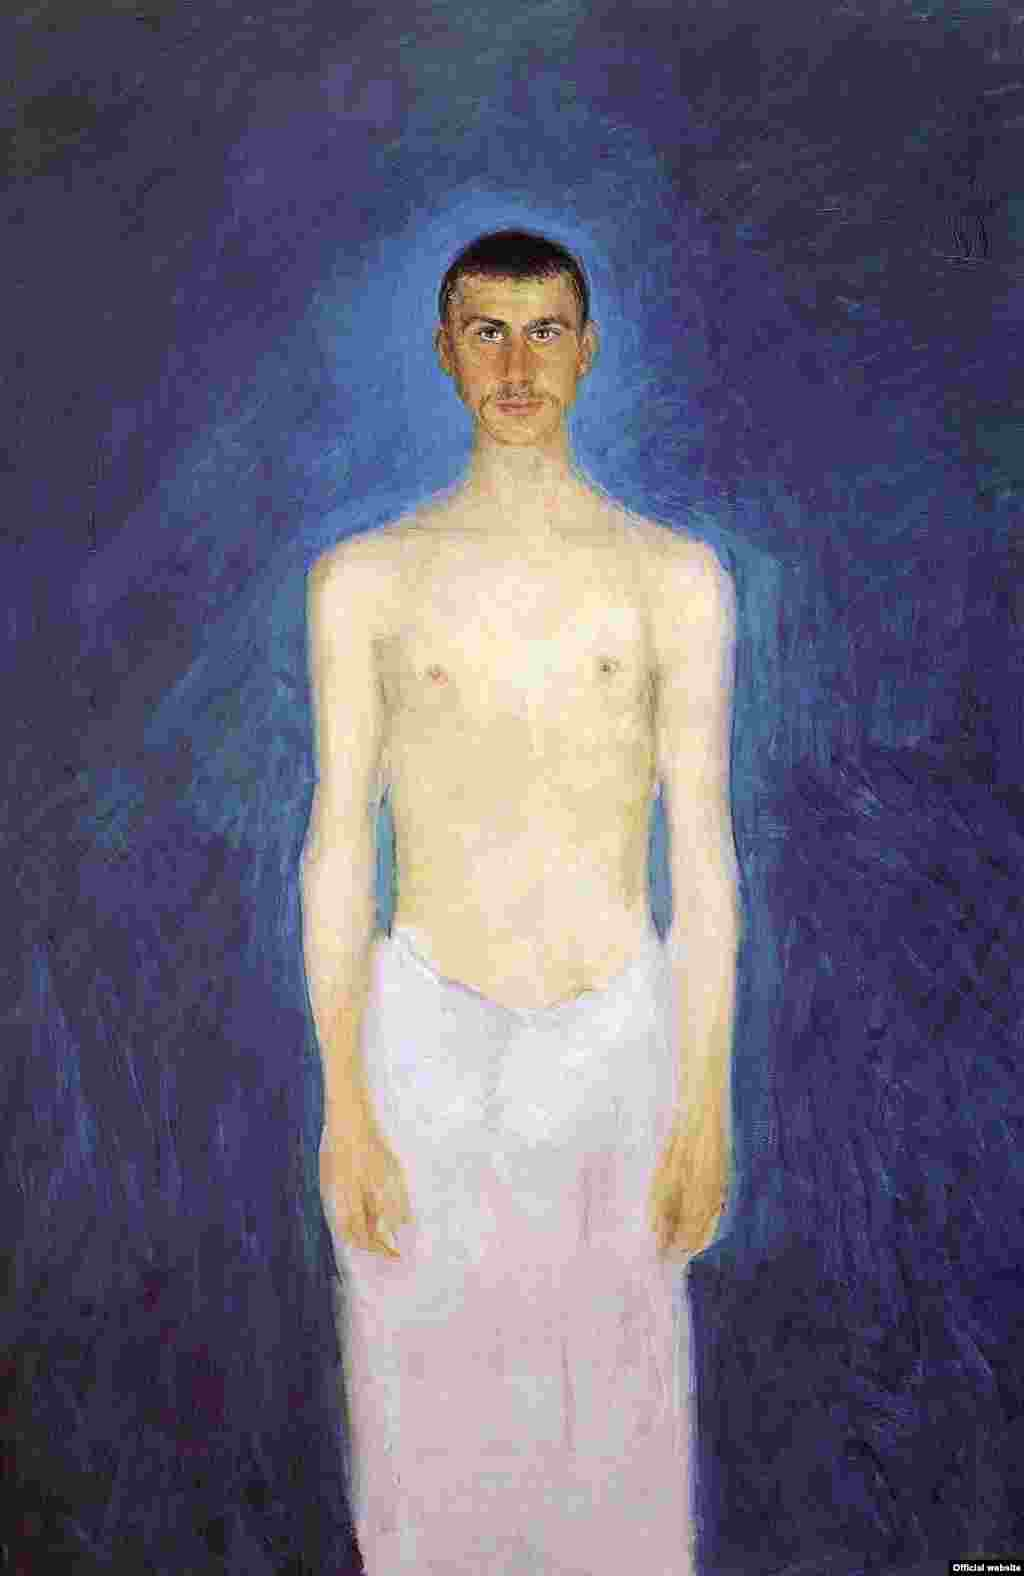 Semi-Nude Self-Portrait, 1902/04, Oil on canvas, 159 x 109 cm, © Leopold Museum, Vienna